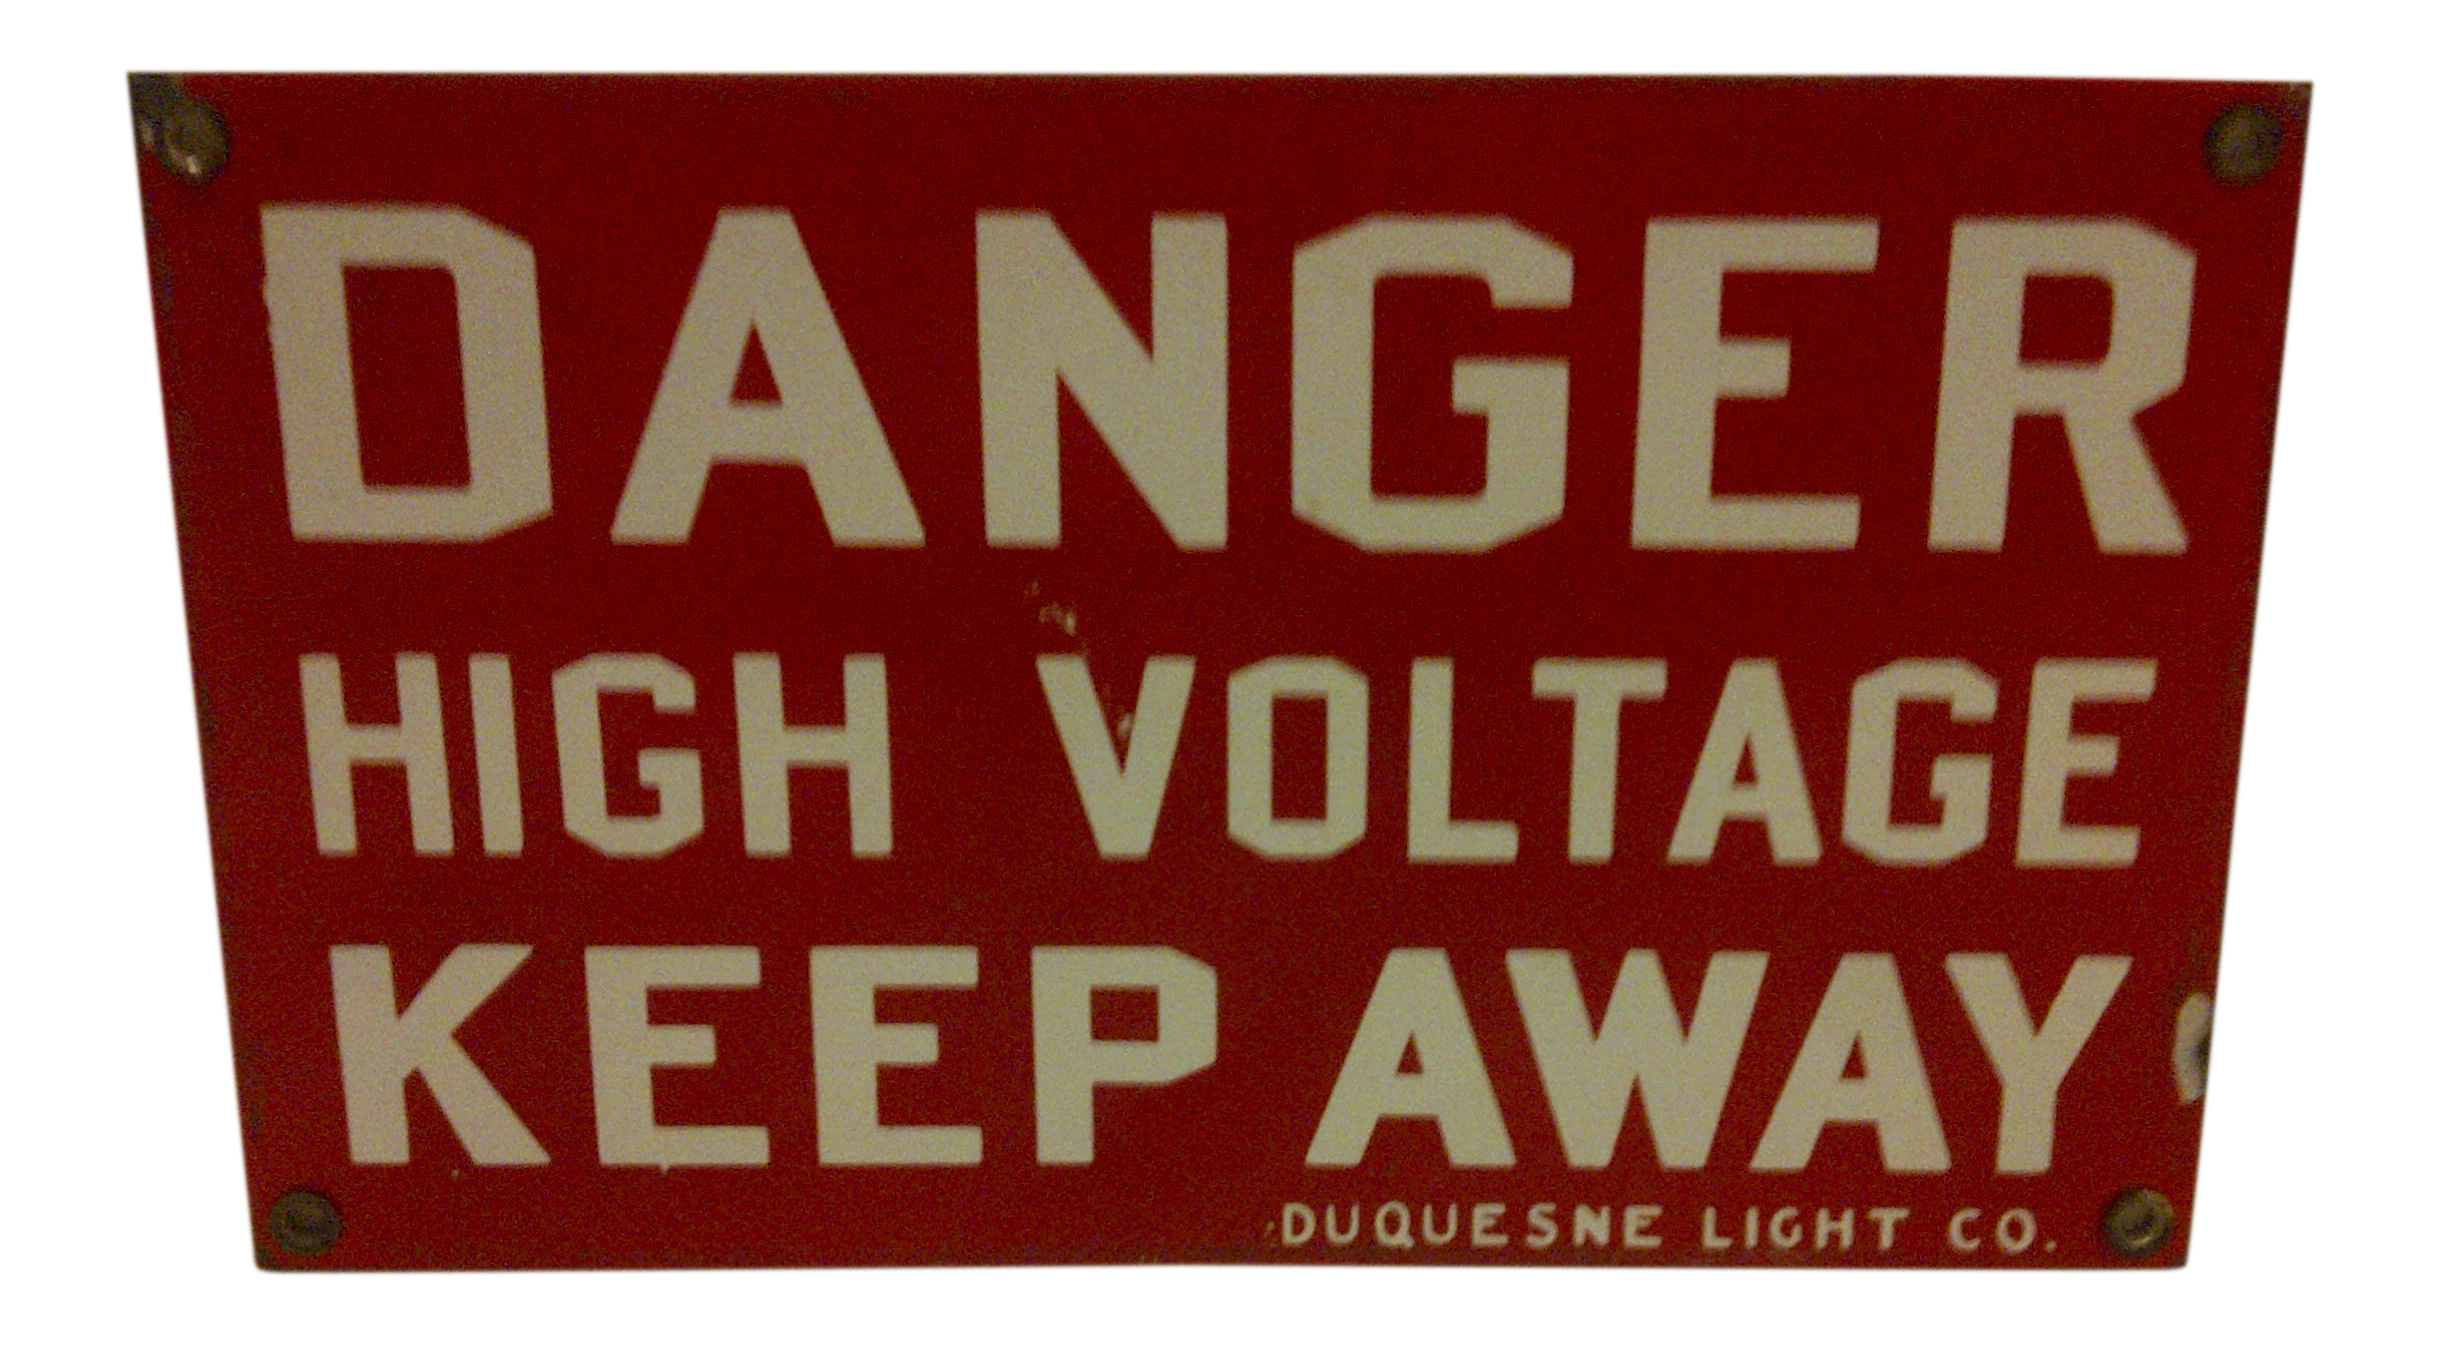 1930s Vintage Danger Sign By Duquesne Light Company